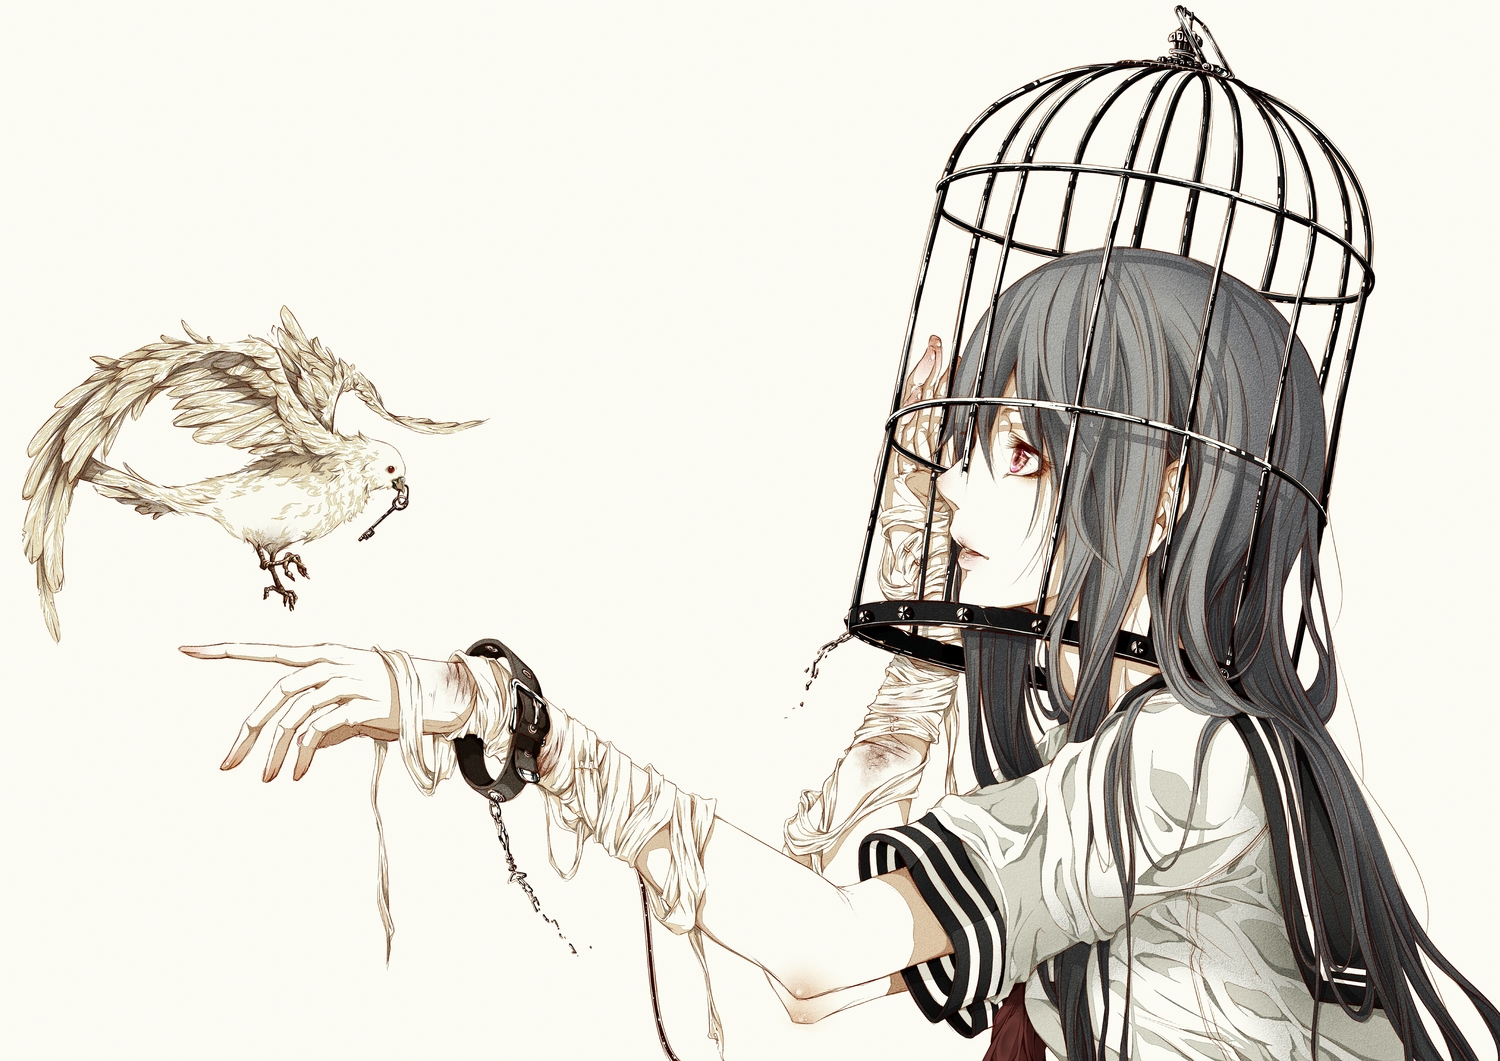 animal bandage bird bouno_satoshi cage chain original polychromatic school_uniform shackles white